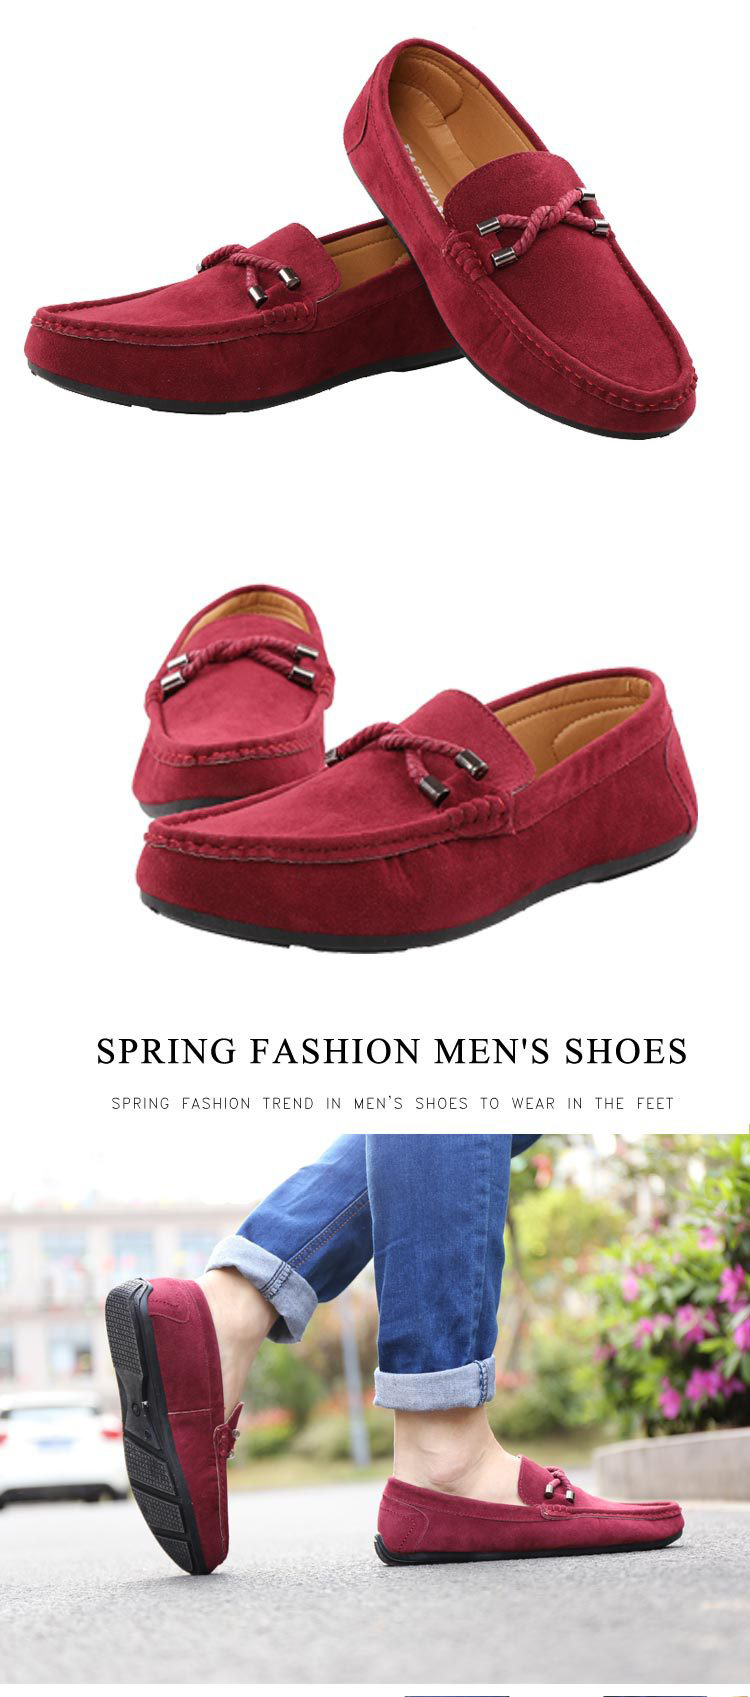 HTB1uD1mUrvpK1RjSZFqq6AXUVXa8 UPUPER Spring Summer NEW Men's Loafers Comfortable Flat Casual Shoes Men Breathable Slip-On Soft Leather Driving Shoes Moccasins